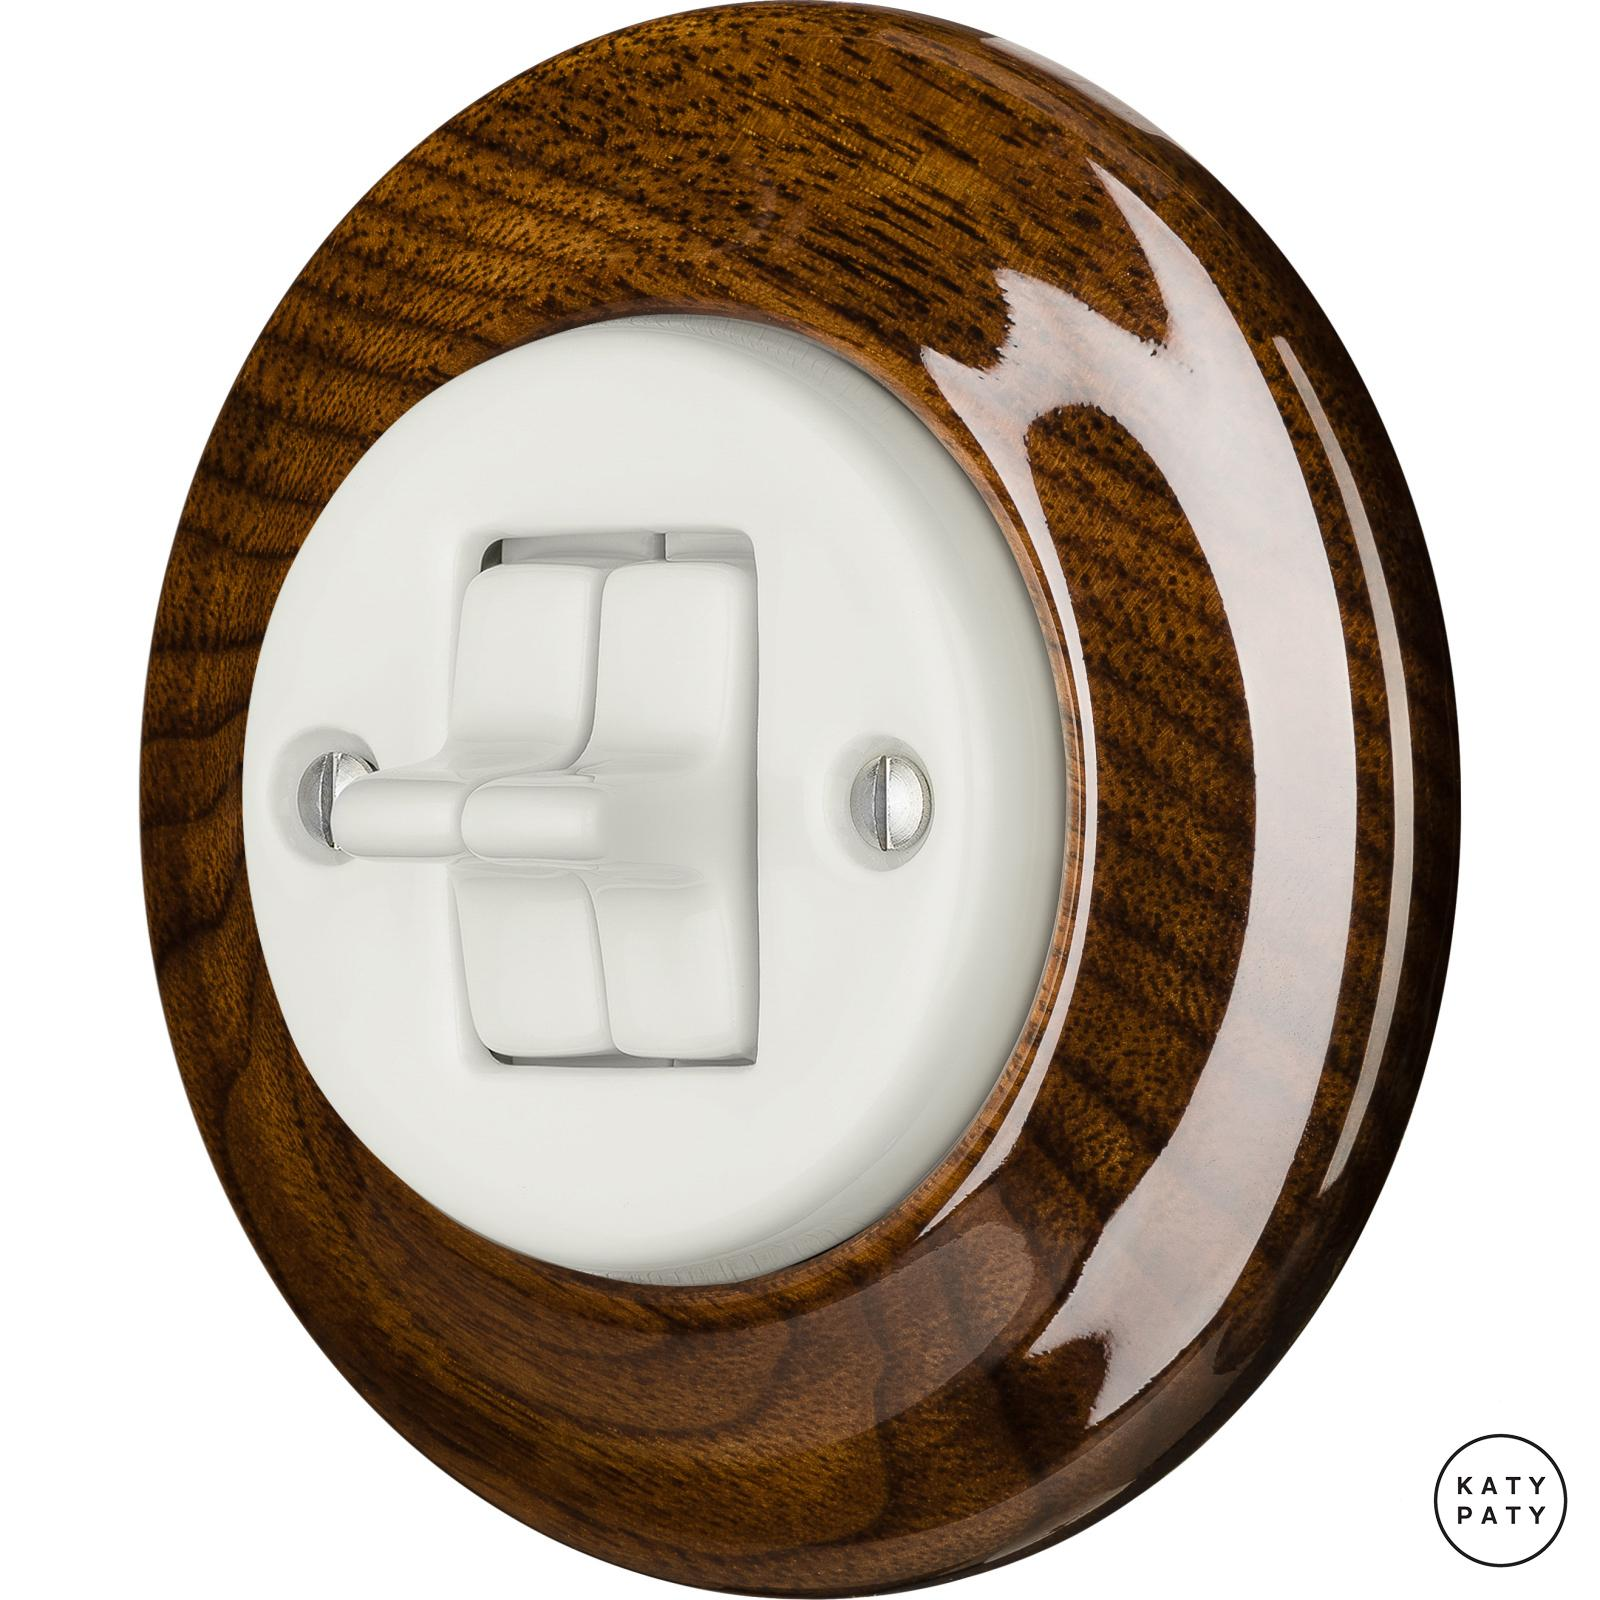 Porcelain toggle switches - a 2 gang ()  - NUCLEUS | Katy Paty